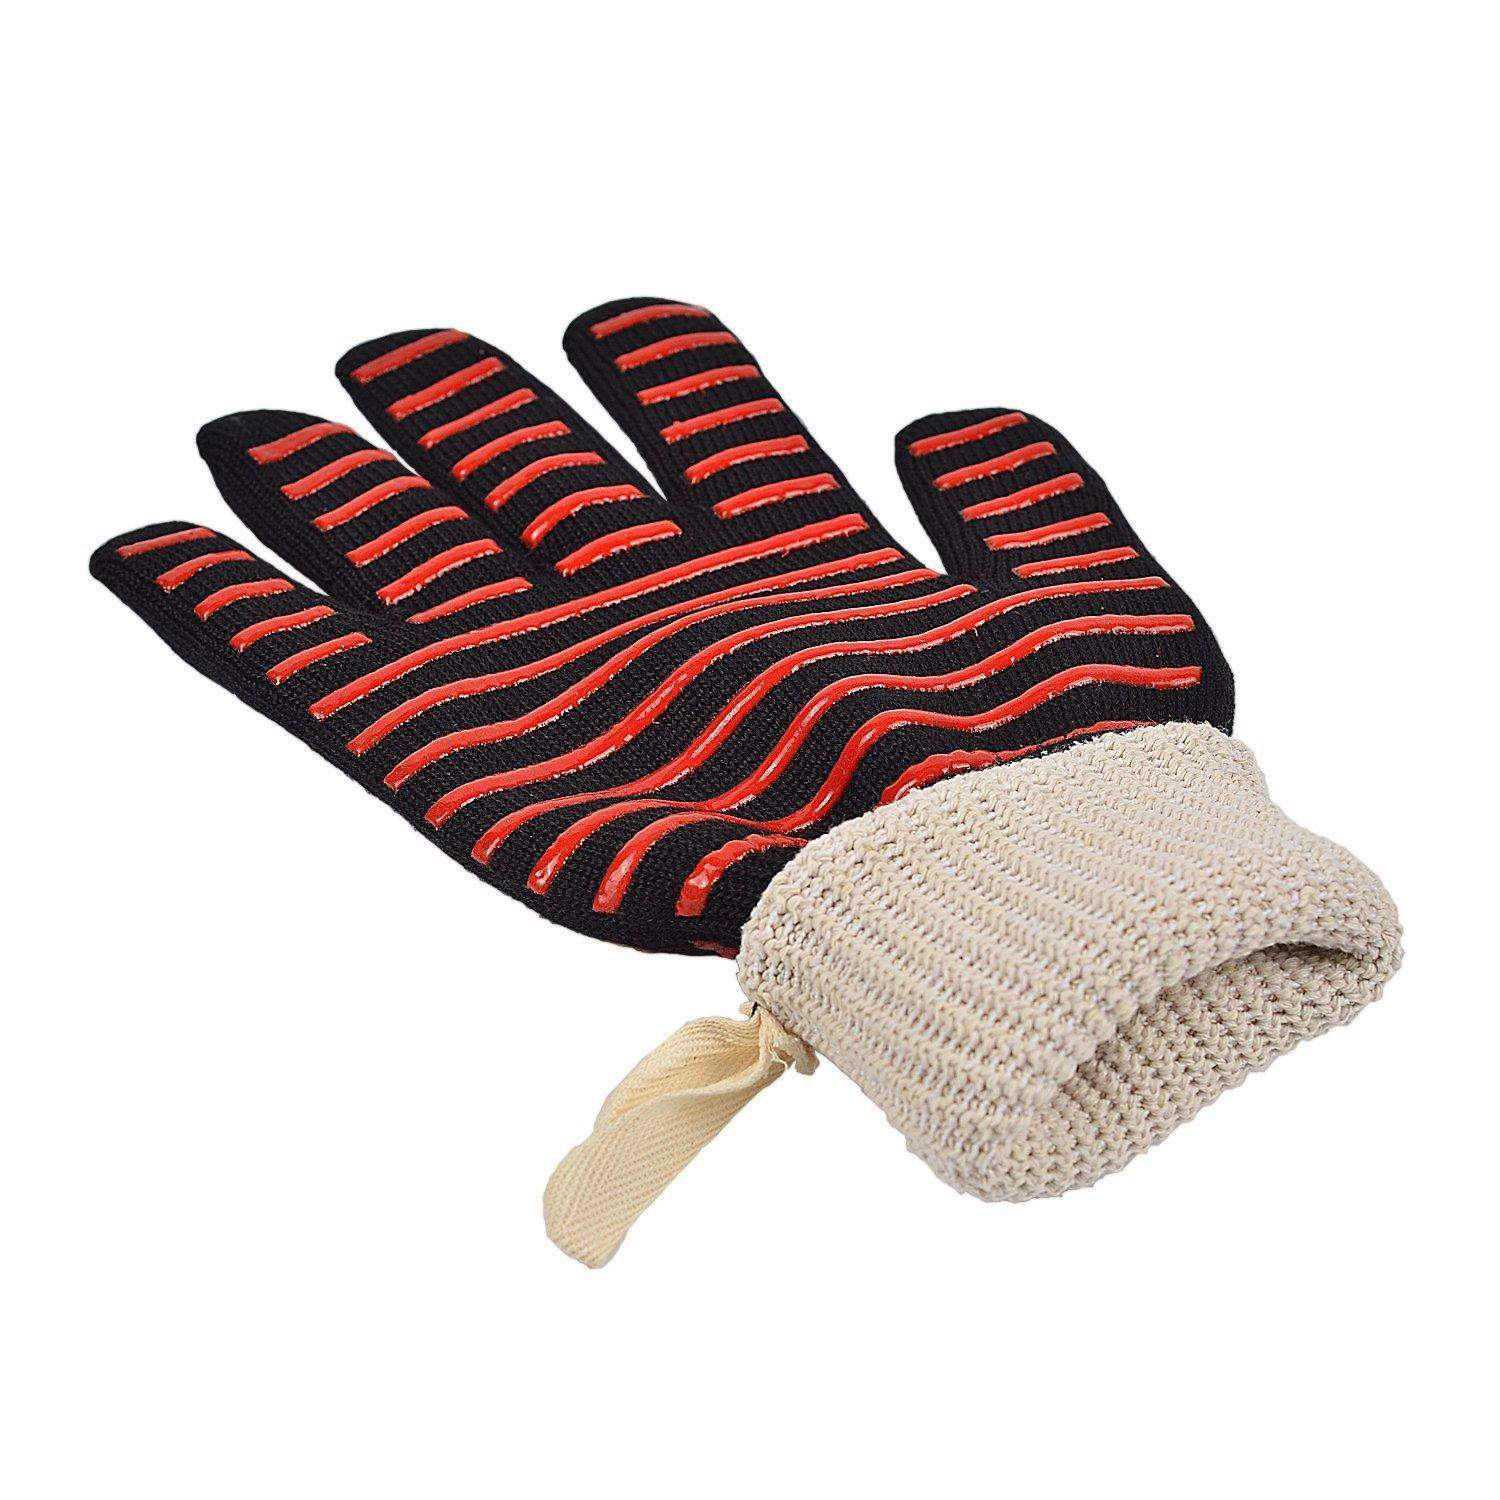 Heat Resistance Gloves BBQ Microwave Oven Gloves Fire prevention 7 designs 500 Centigrade Aramid glove Silicone Baking Gloves